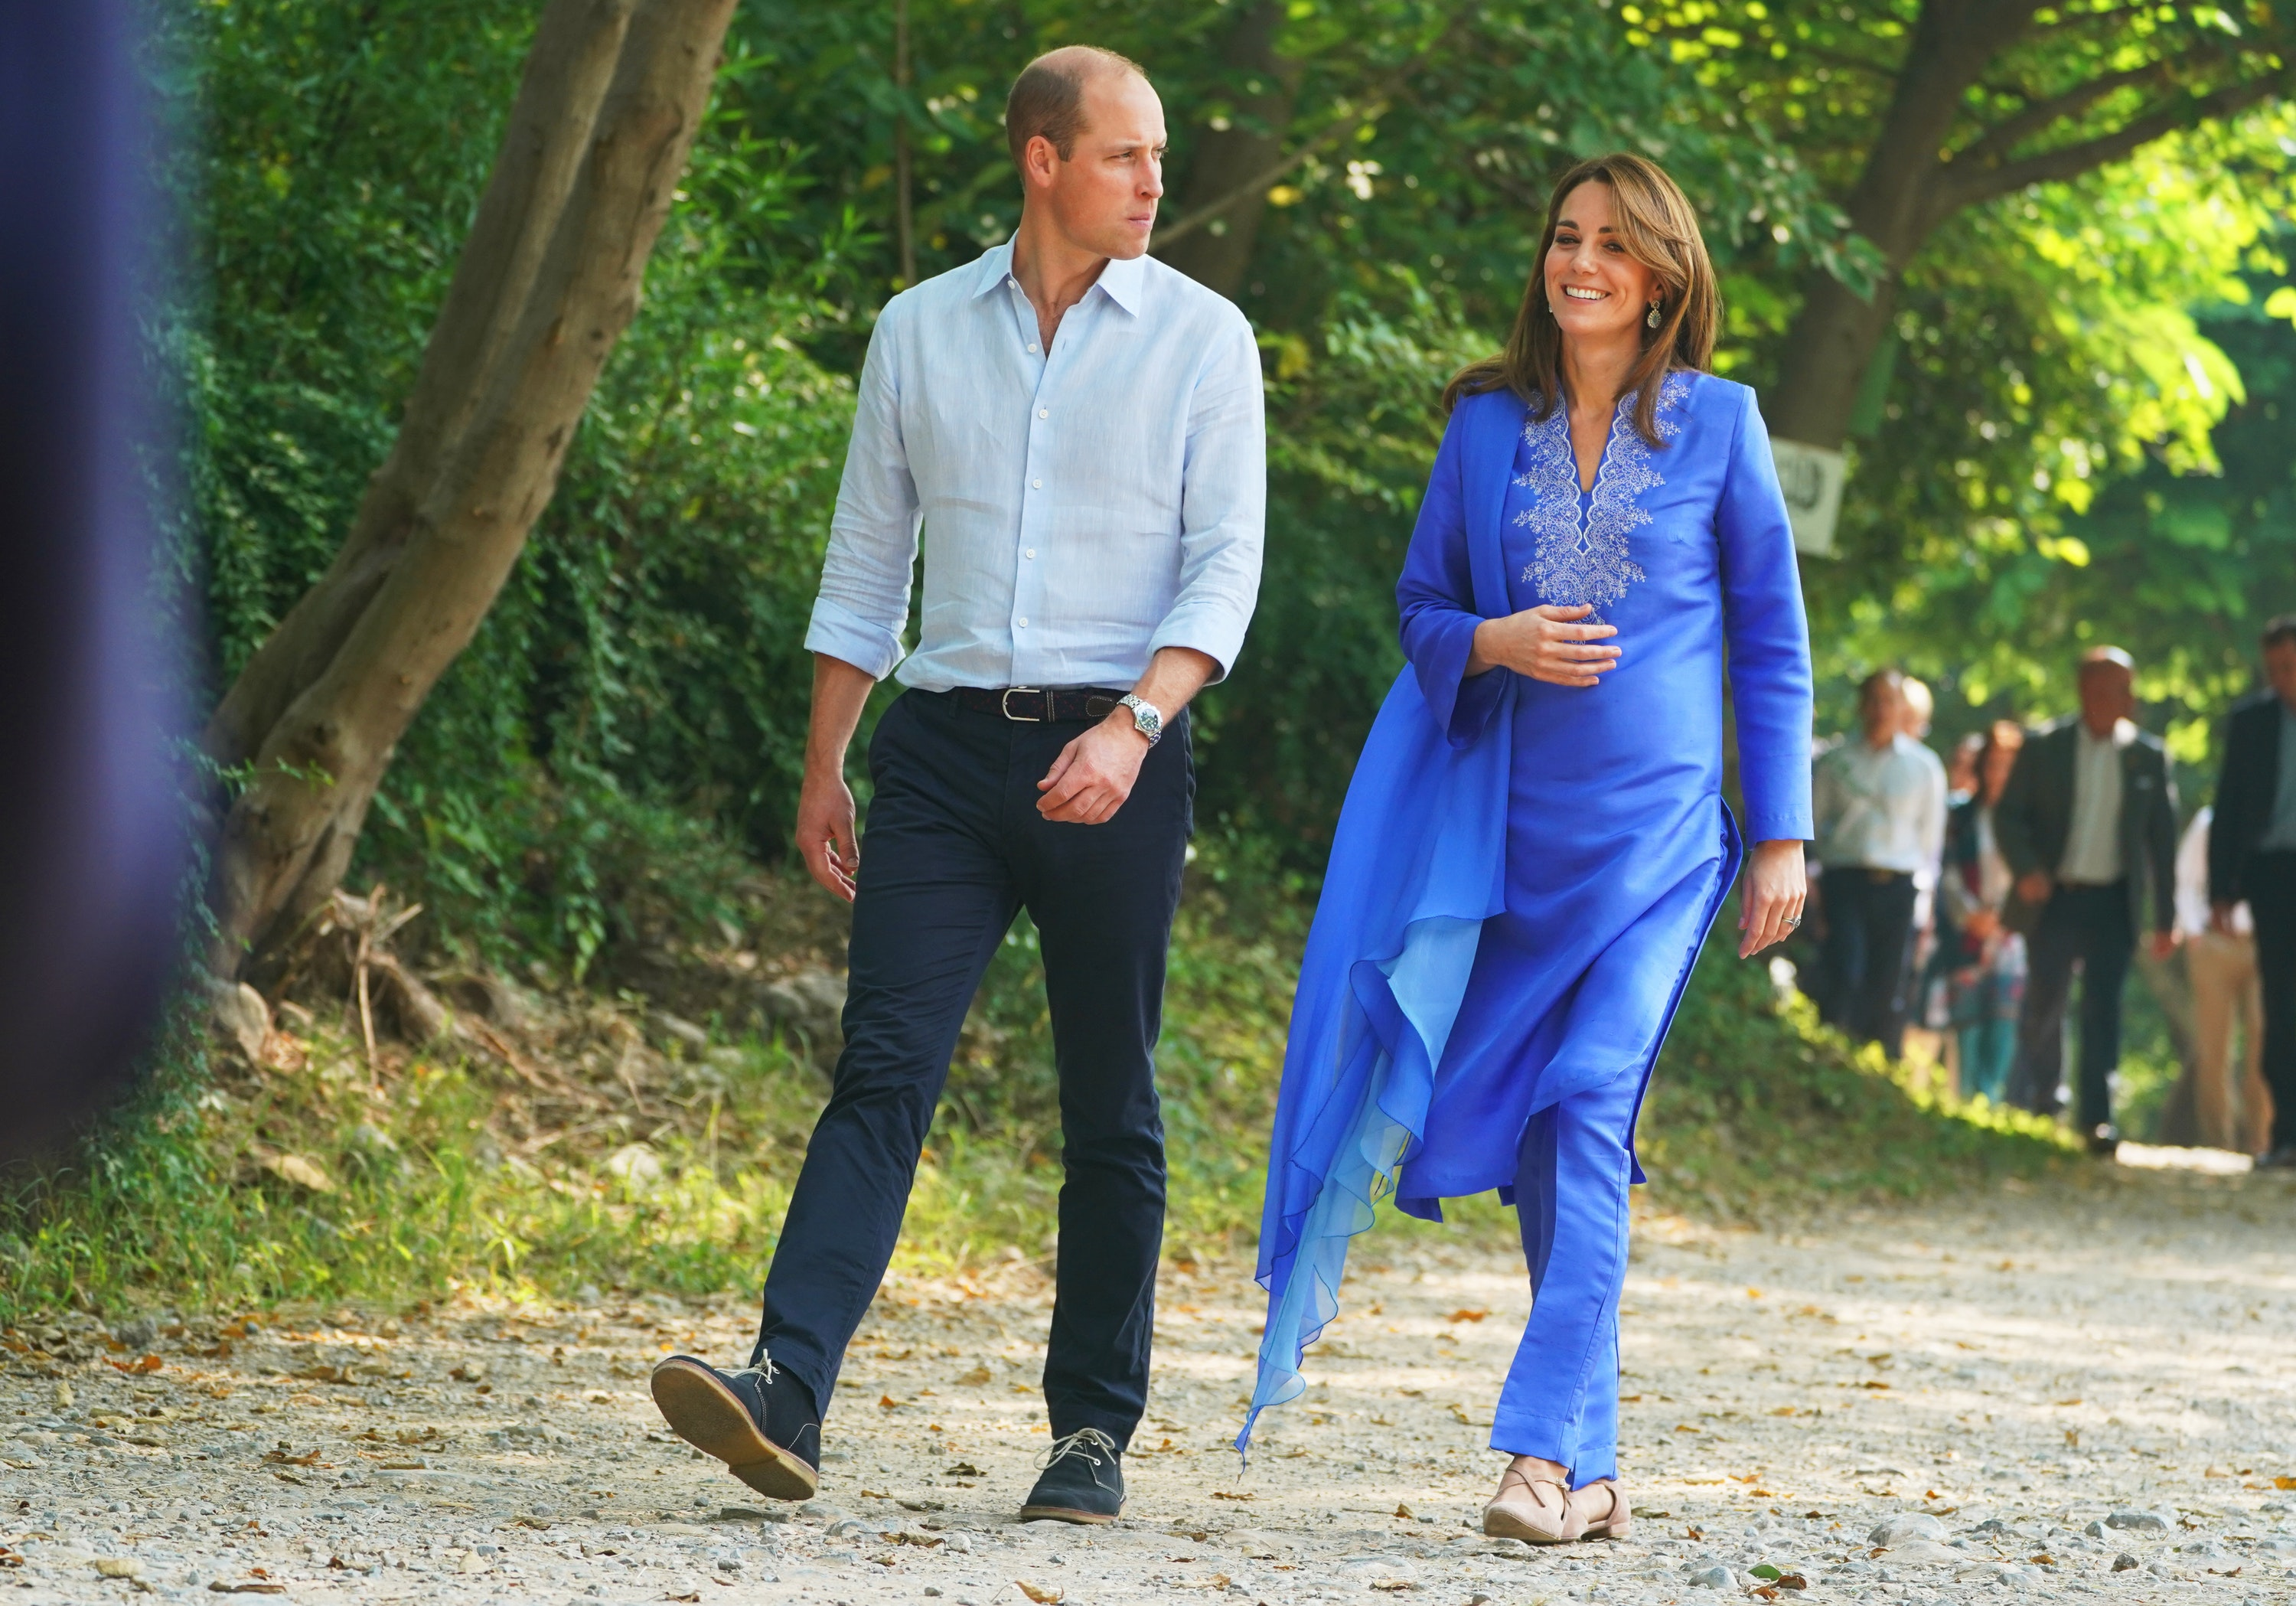 Kate wears a jewel-tone kurta